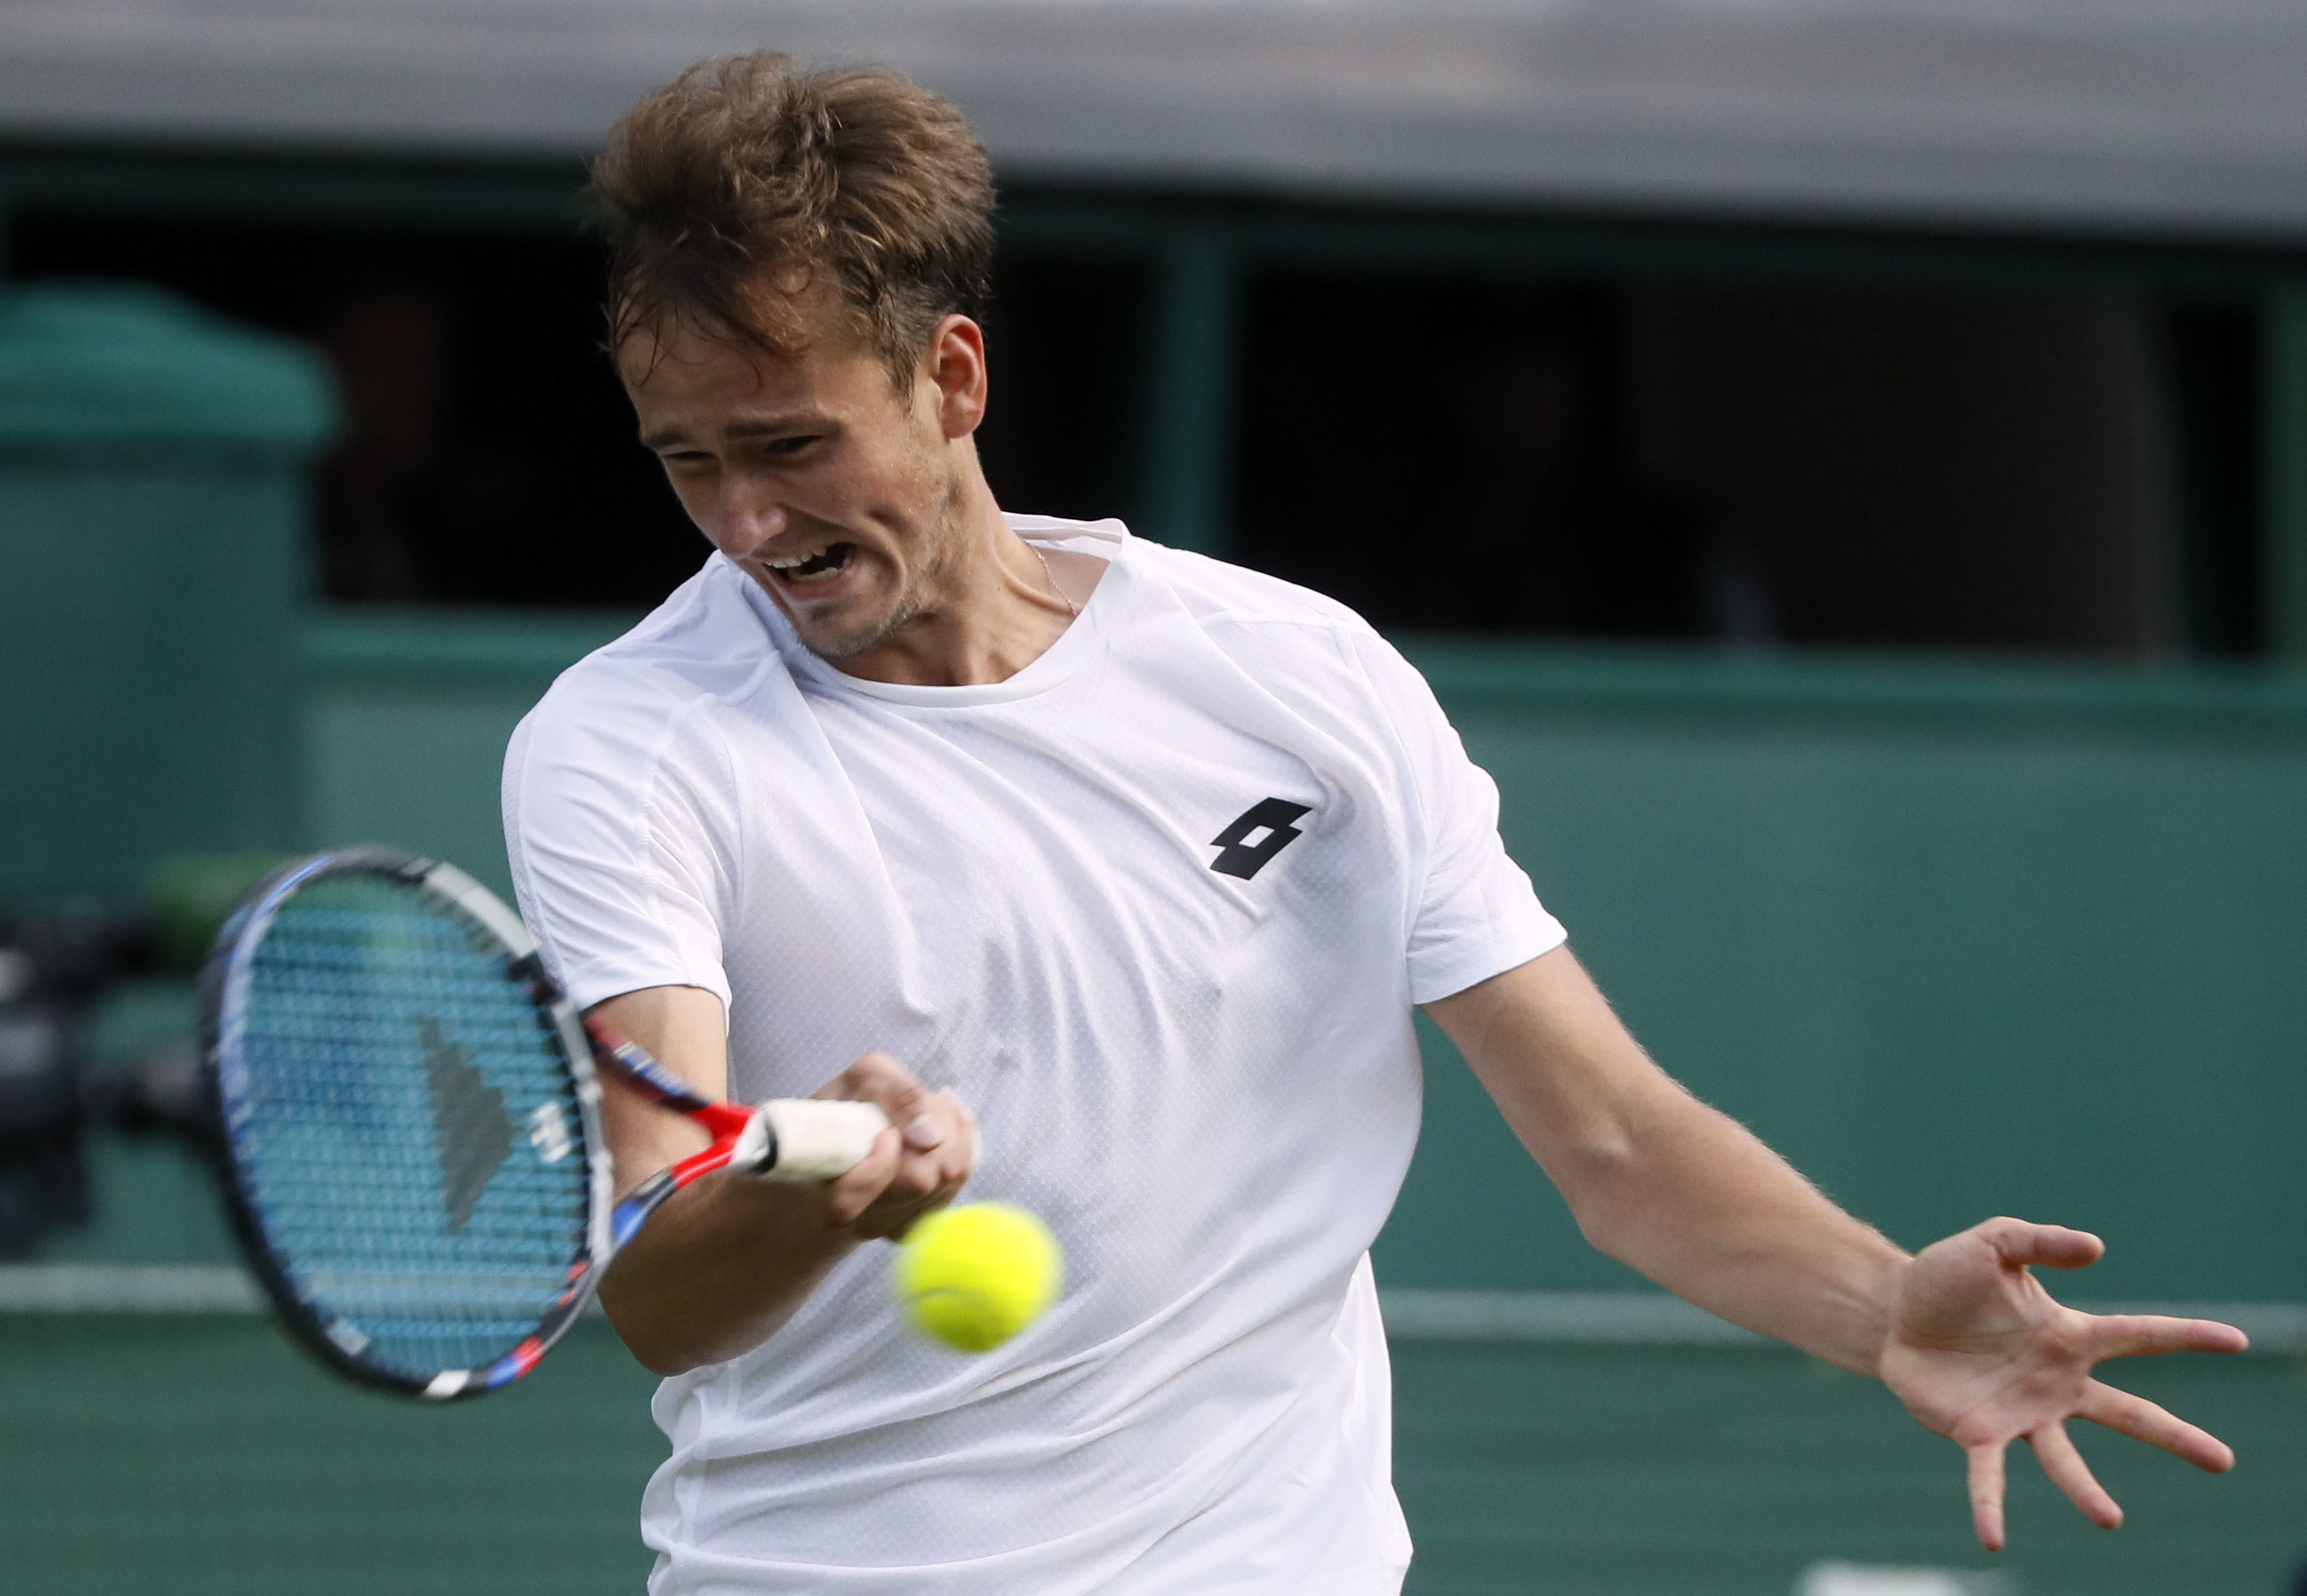 Russia's Daniil Medvedev returns to Switzerland's Stan Wawrinka during his Men's Singles Match on the opening day at the Wimbledon Tennis Championships in London Monday, July 3, 2017. (AP Photo/Kirsty Wigglesworth)